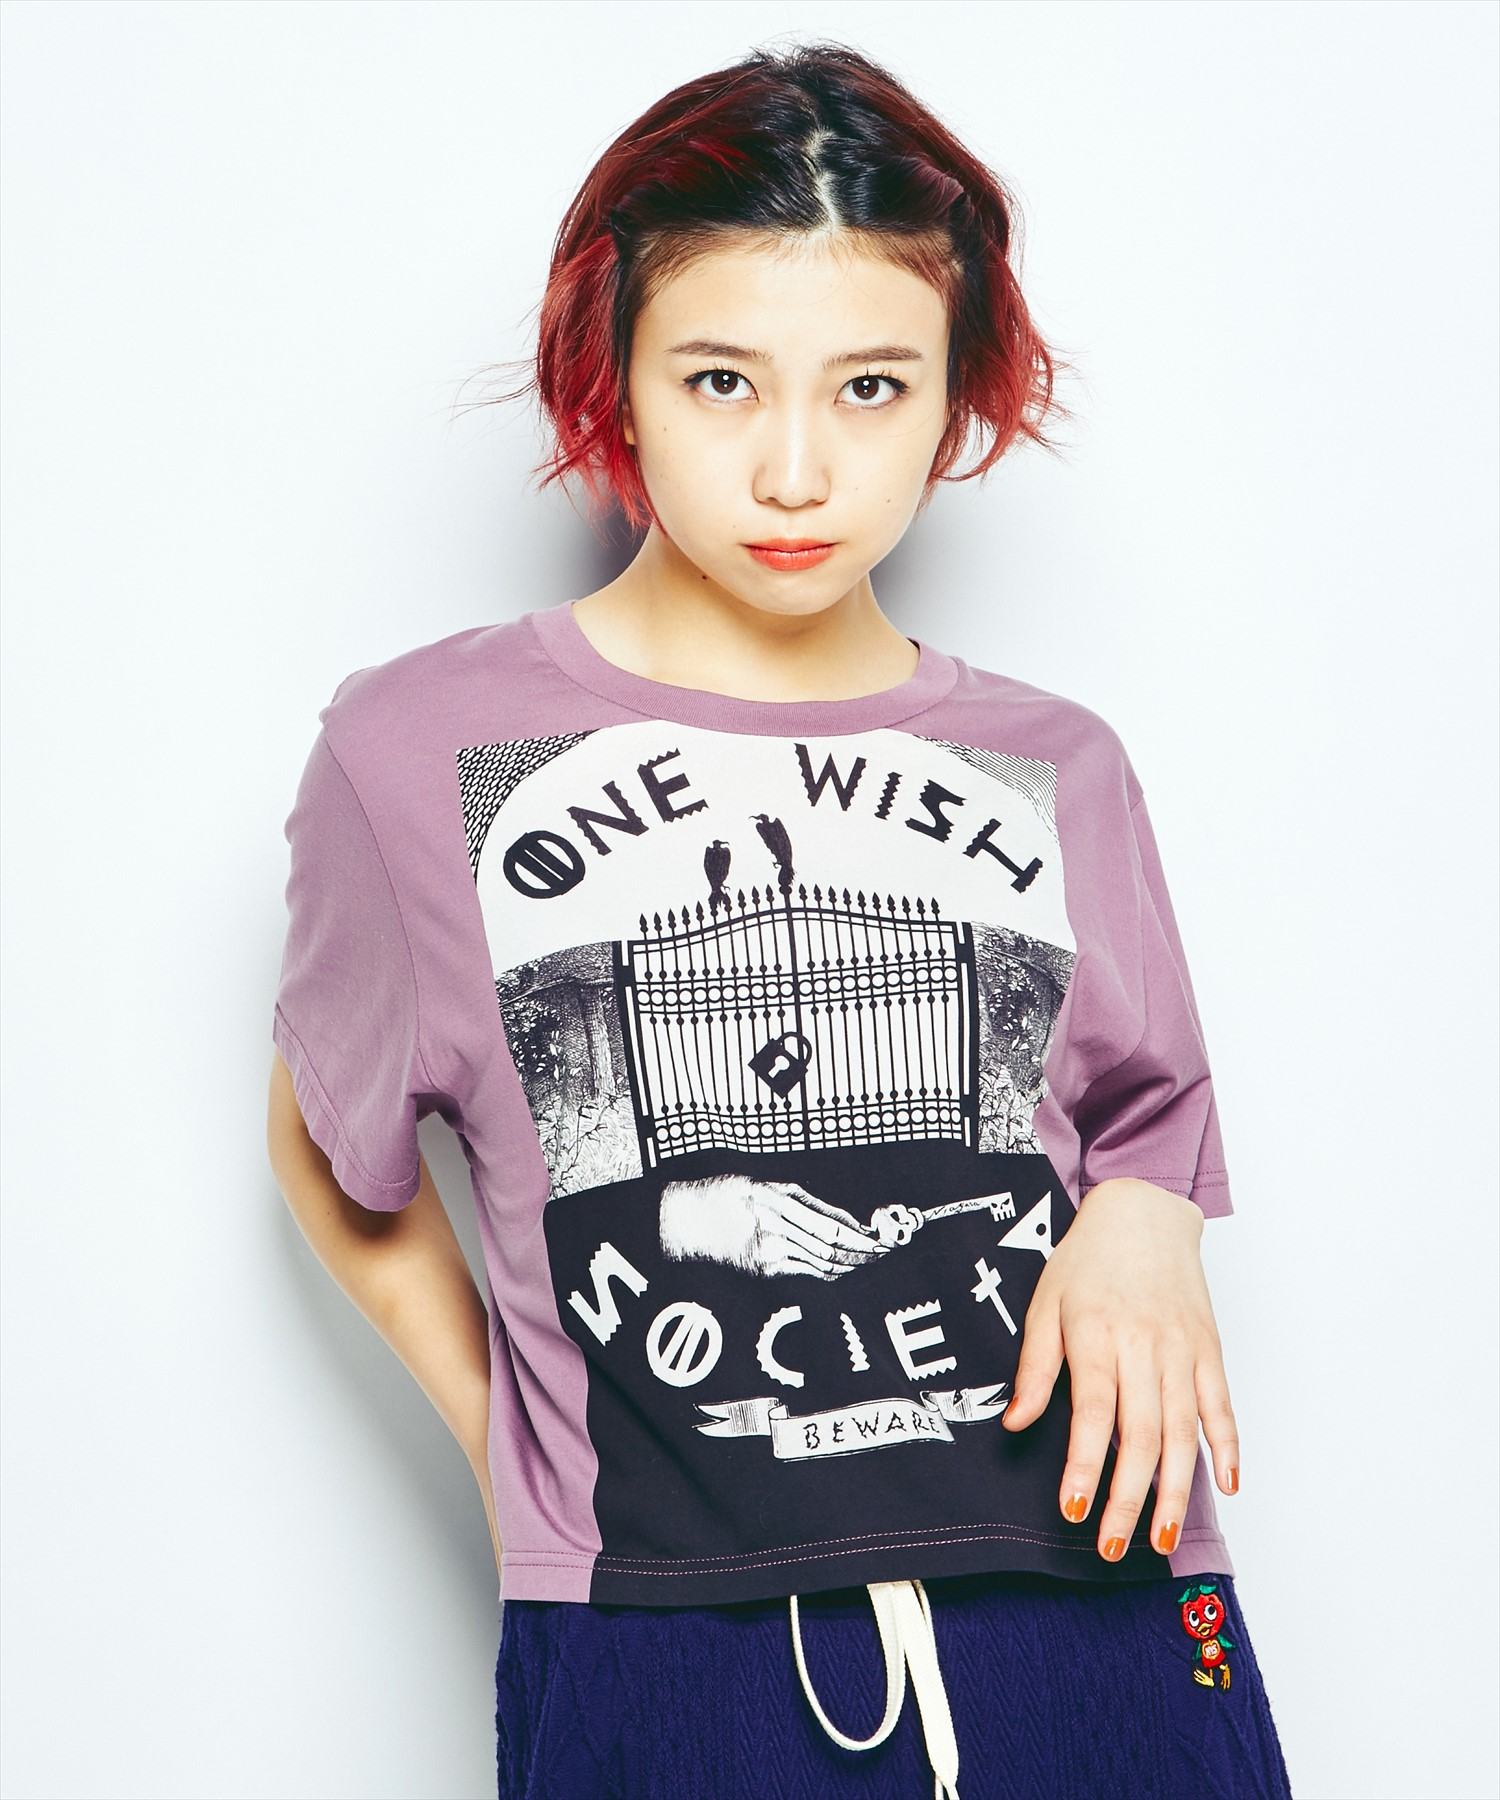 NIAGARA/ONE WISH SOCIETYショートTシャツ